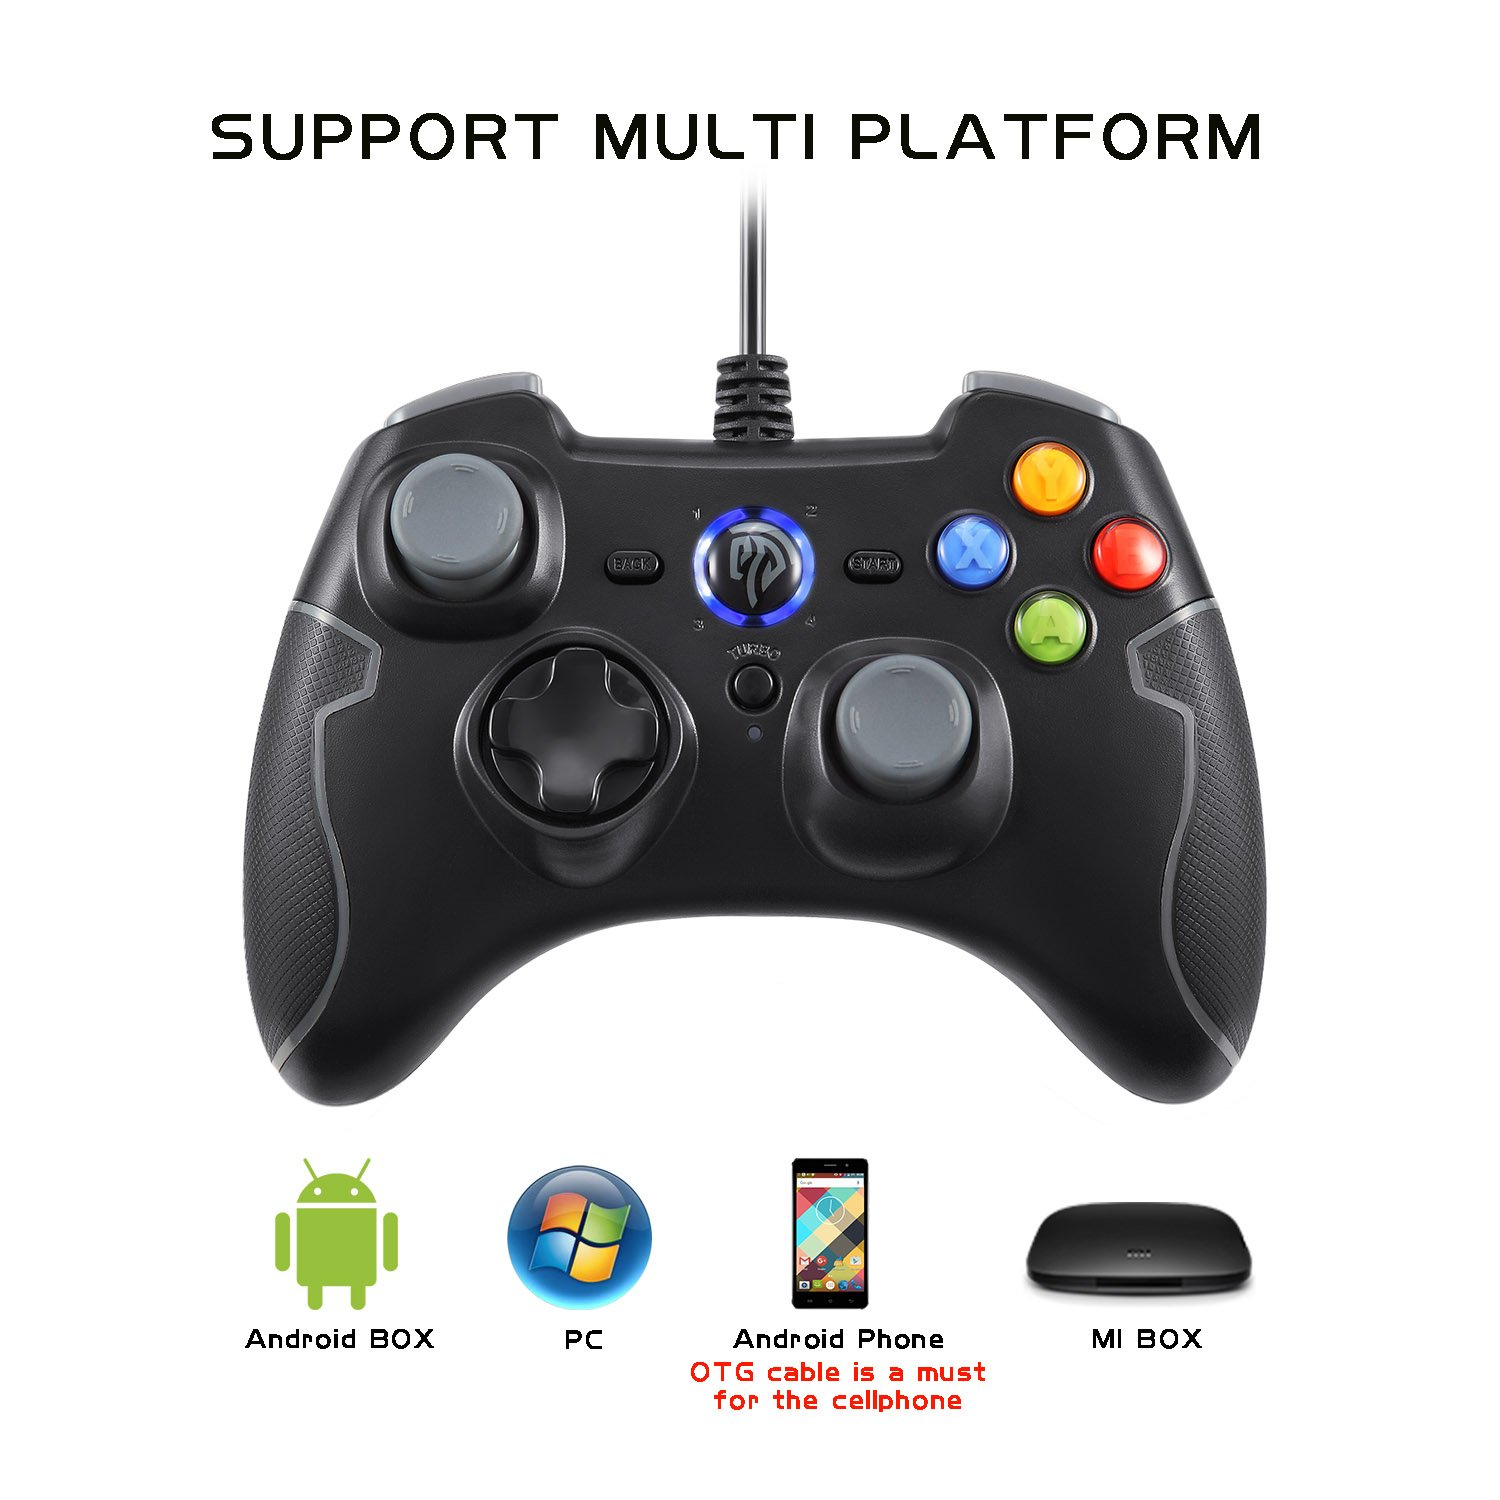 Wired Gaming Controller, EasySMX PC Game Controller Joystick with Dual-Vibration Turbo and Trigger Buttons for Windows/Android/ PS3/ TV Box (Gray) by EasySMX (Image #3)